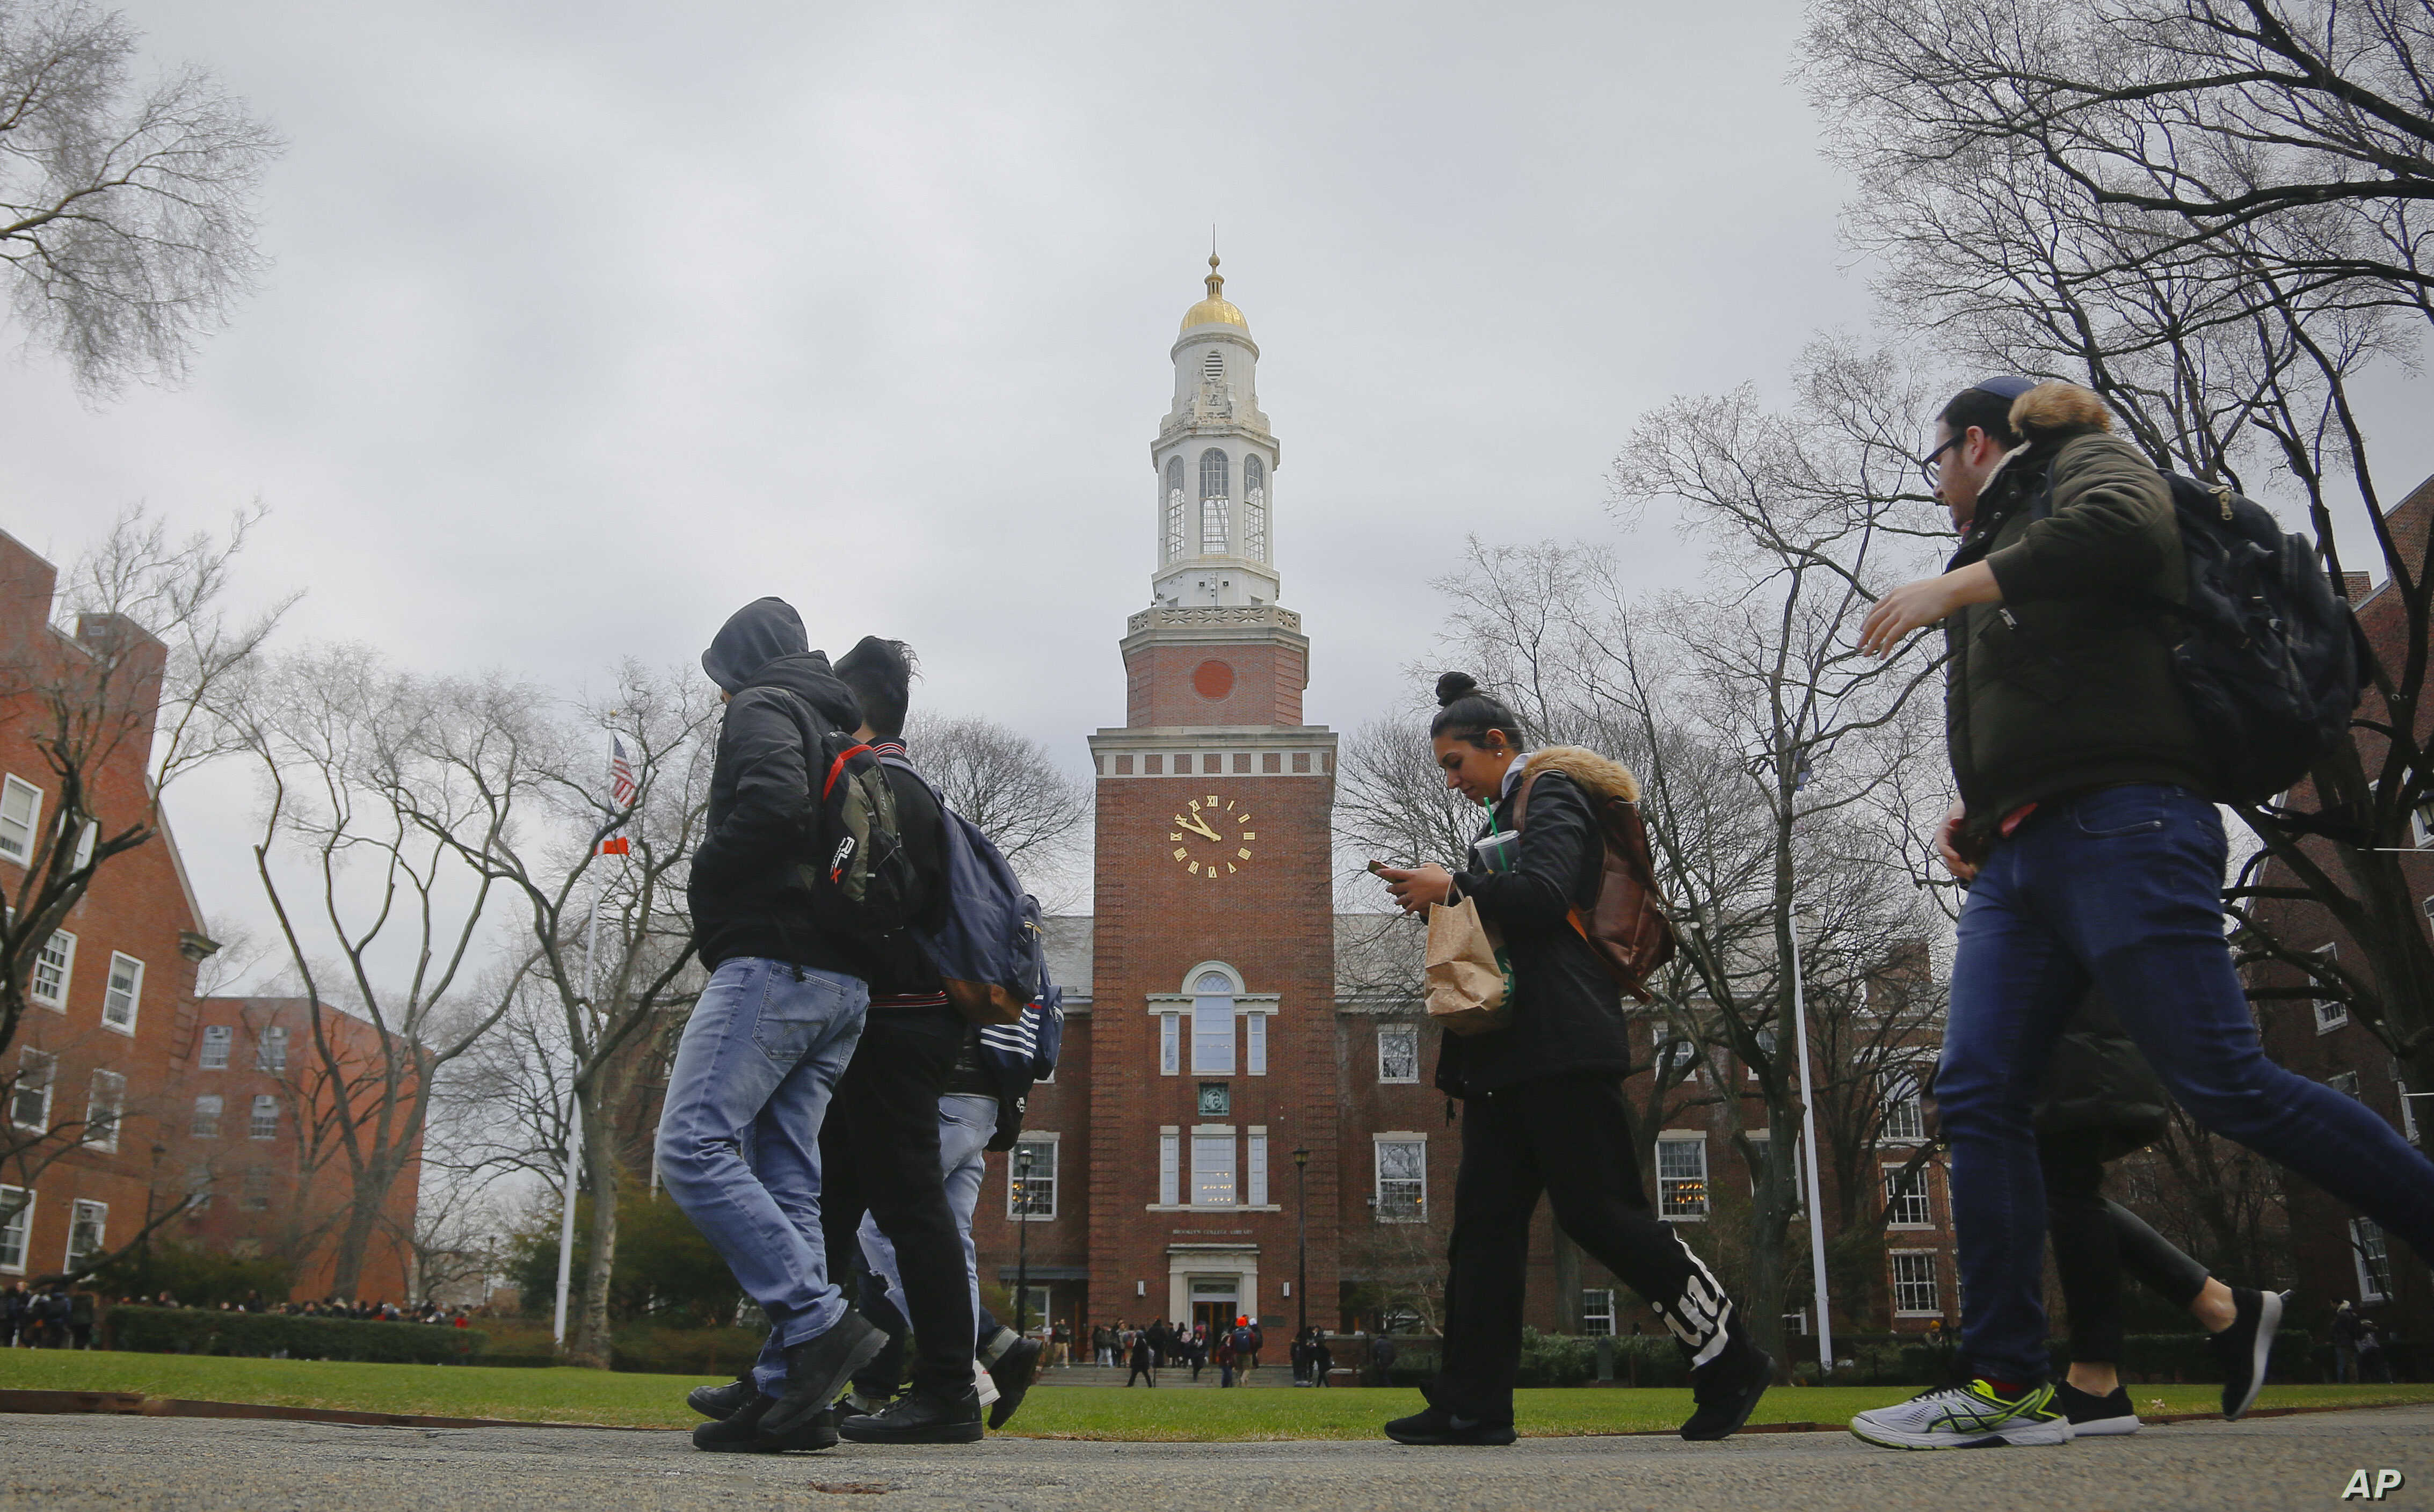 More US Colleges Seek International Students   Voice of